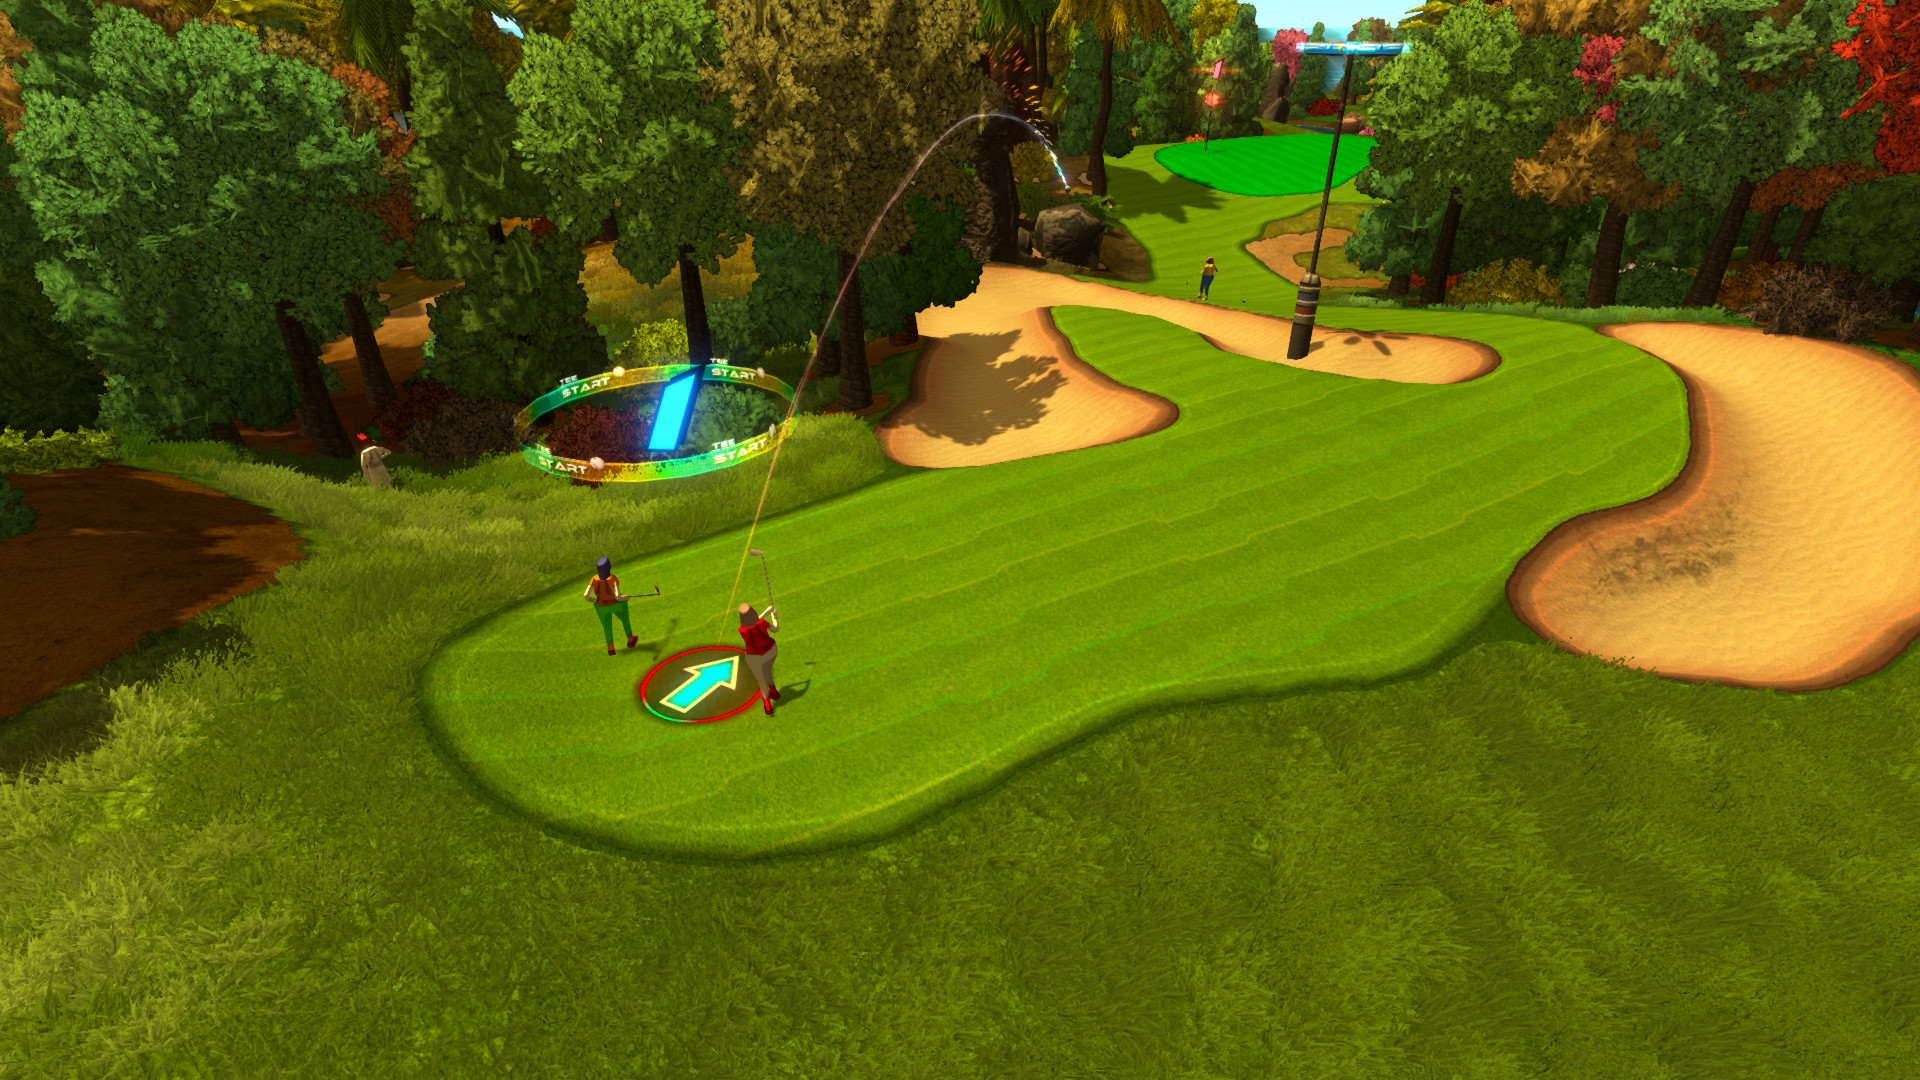 Find the best gaming PC for GolfTopia